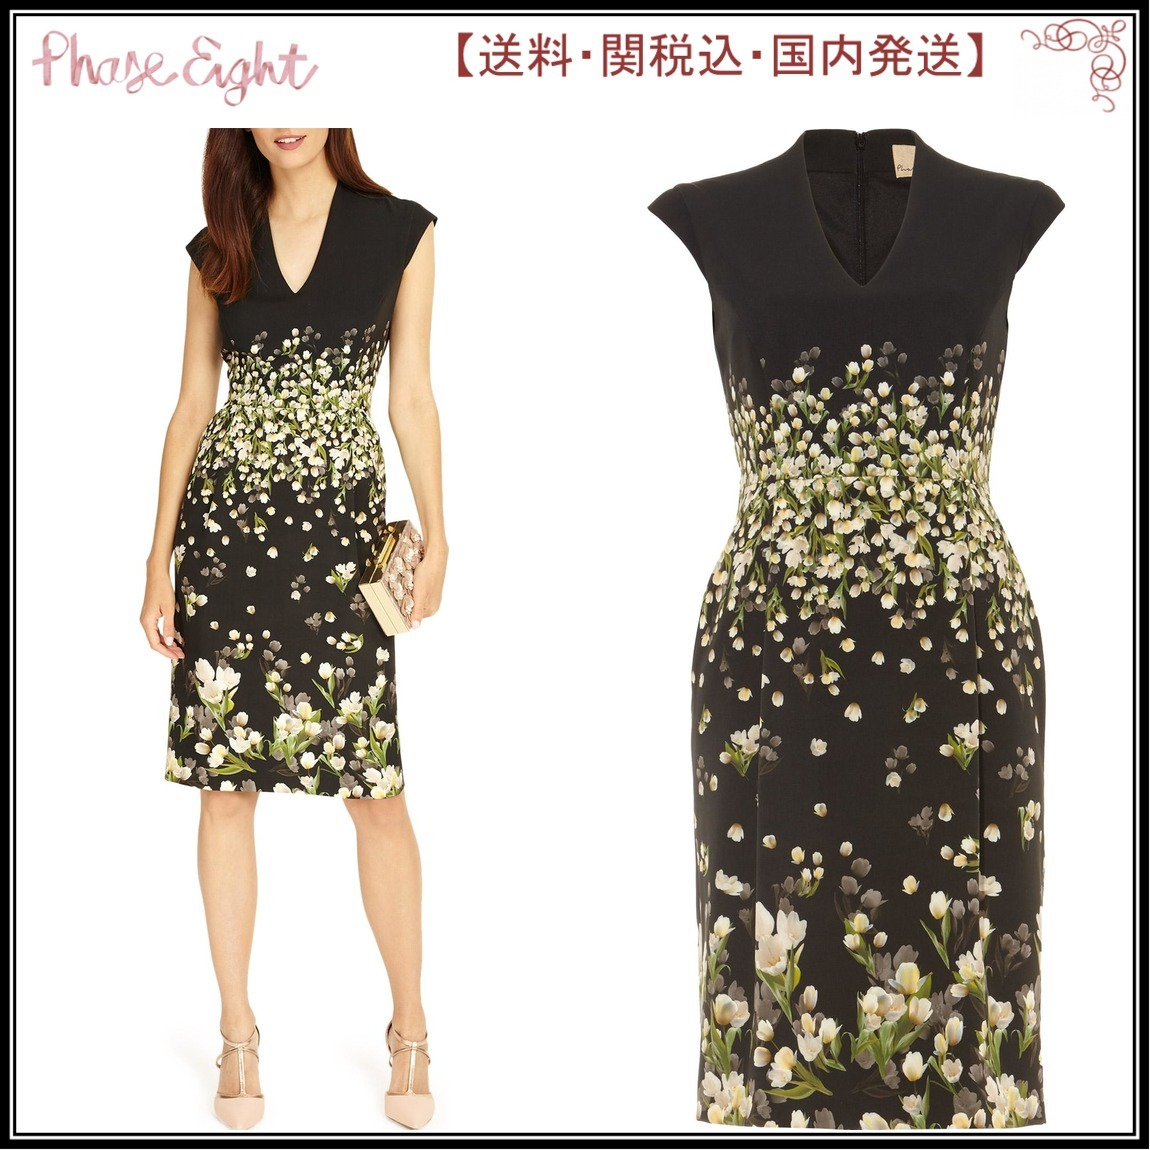 【関税込】PhaseEight ワンピース☆Melodie Floral Dress